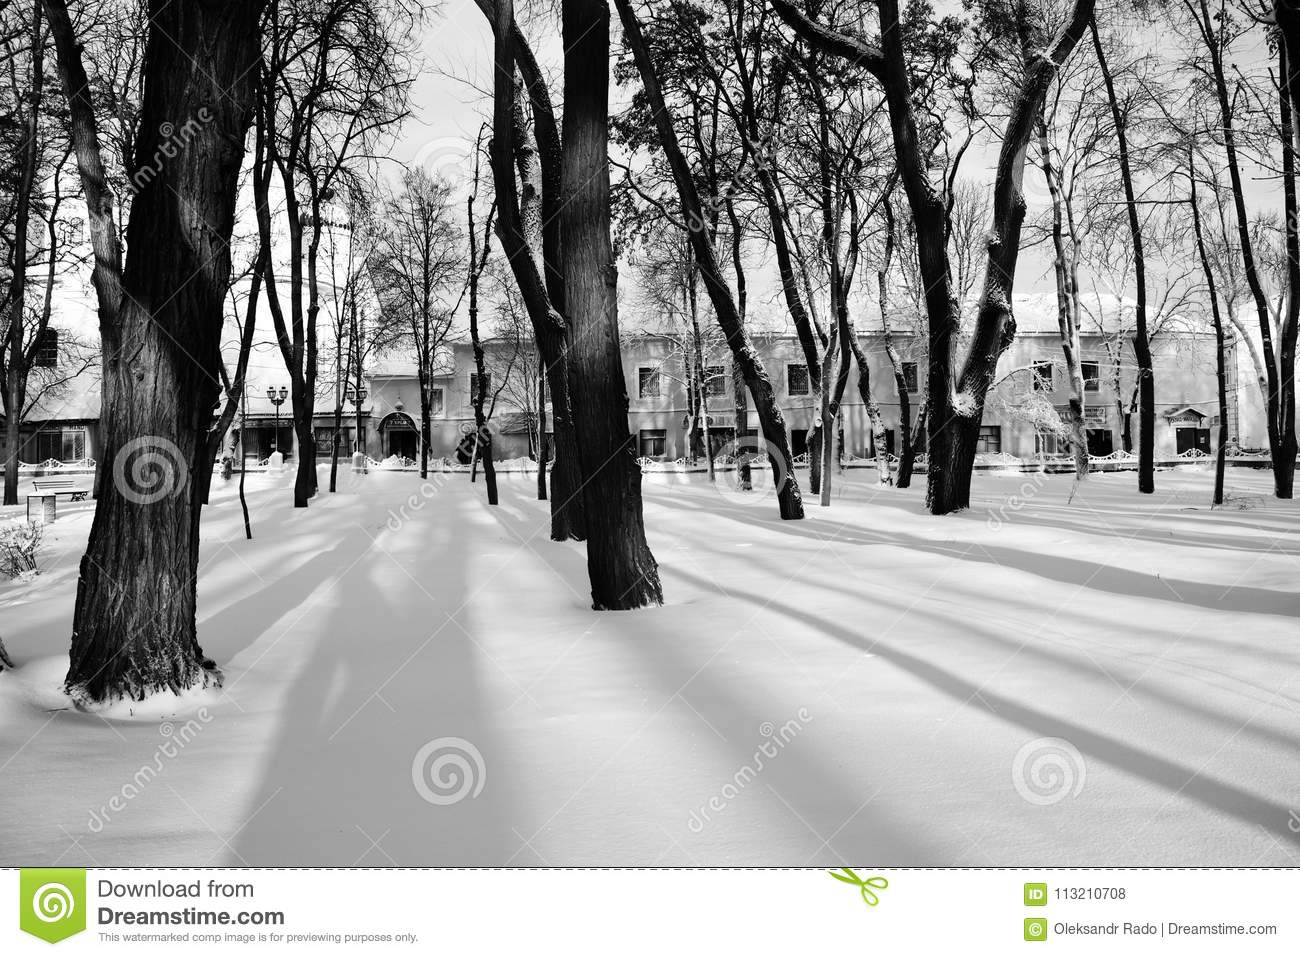 Black white photo nikolai gogol park in nizhyn ukraine covered snow